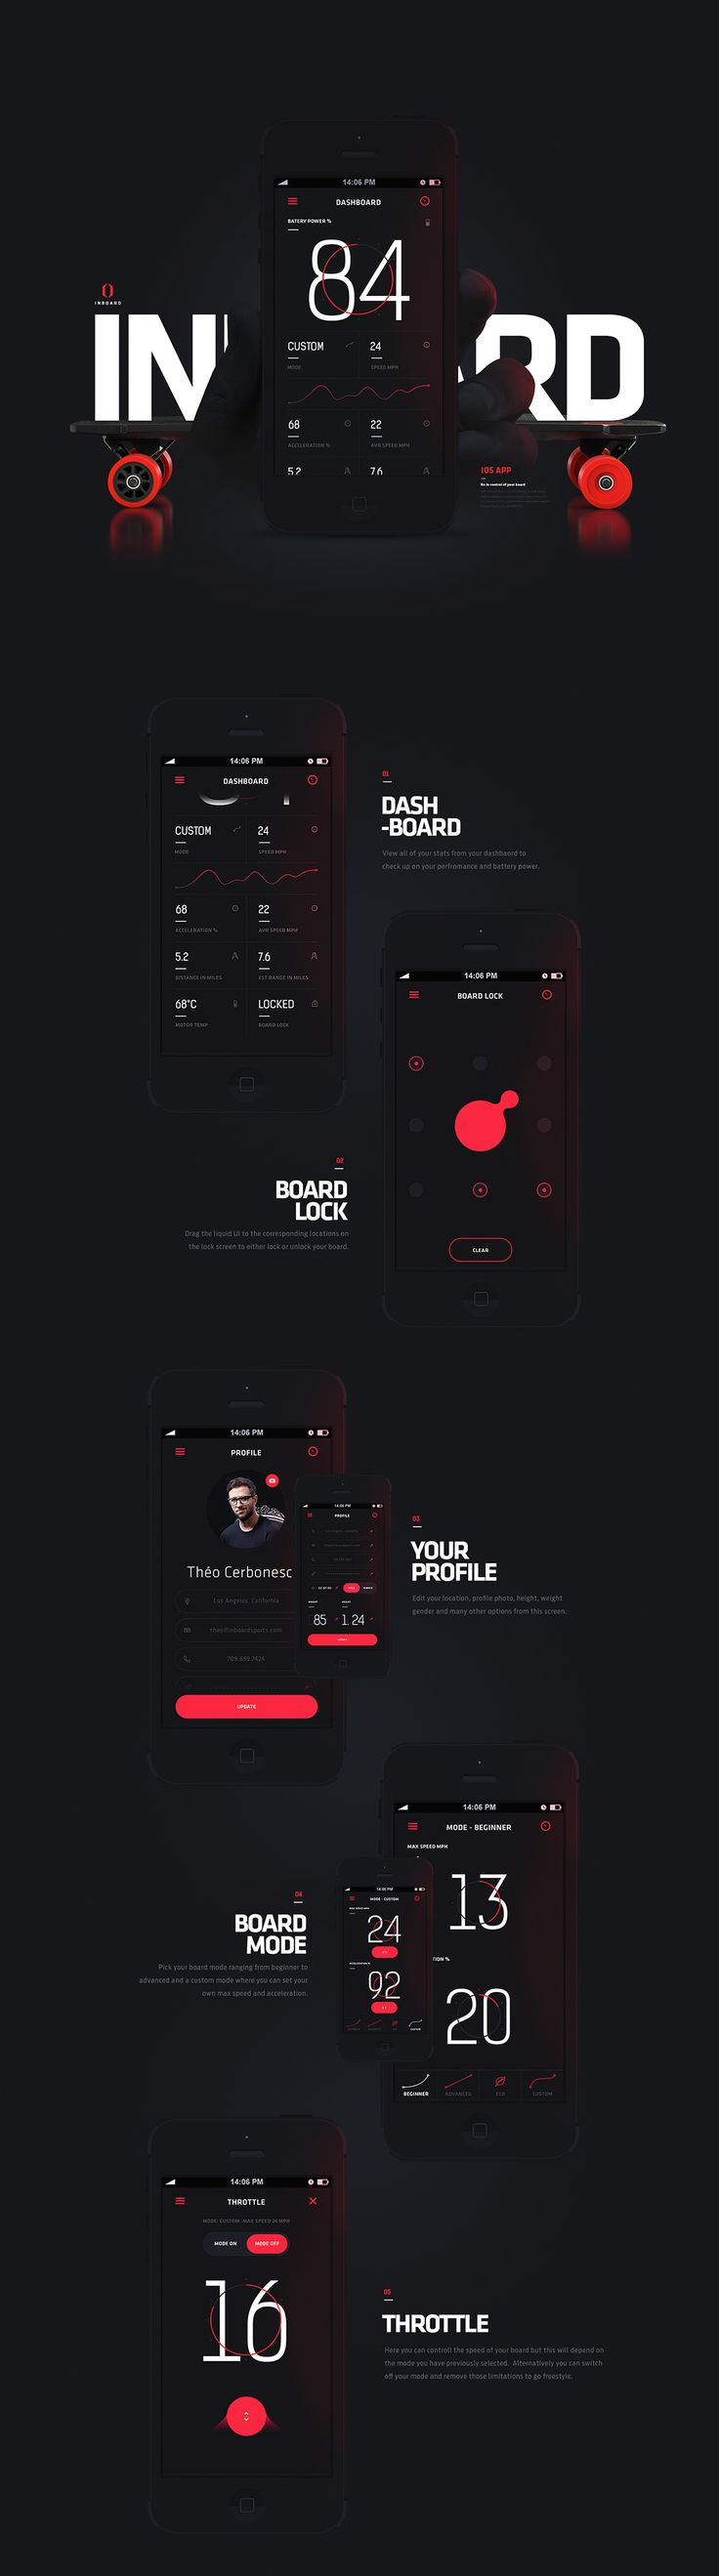 Inboard - Longboard App Controller on Behance